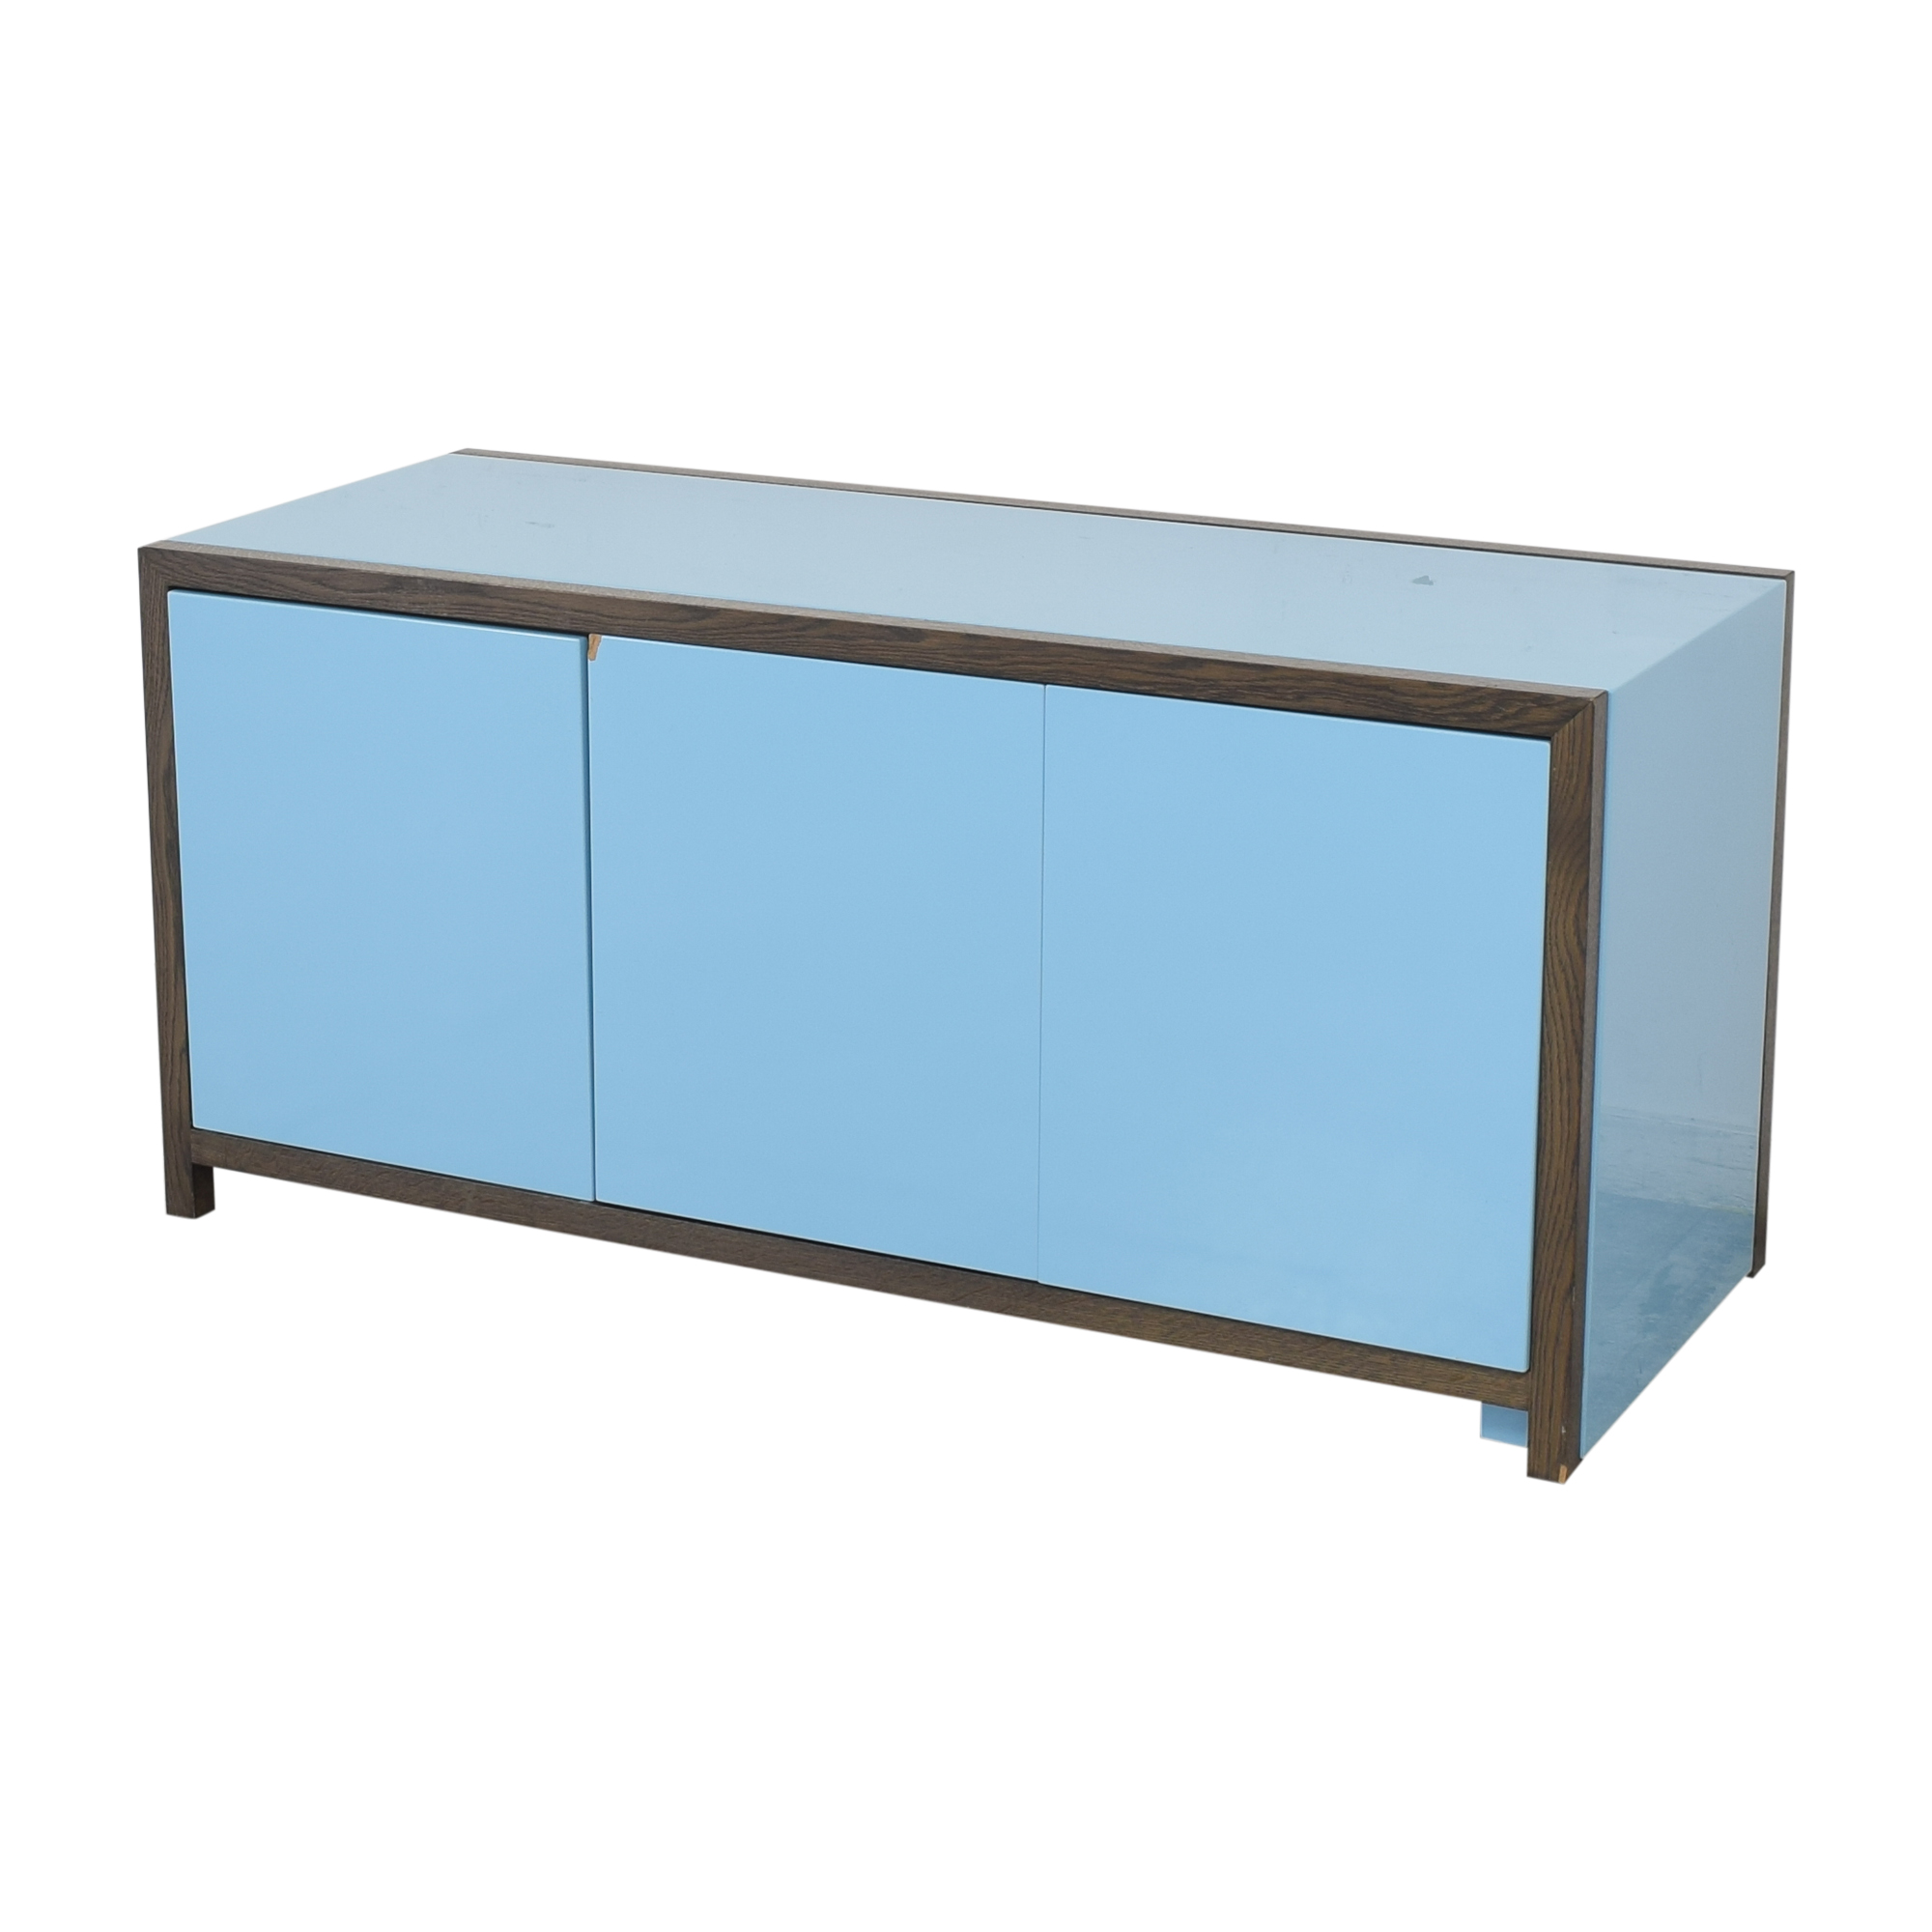 Dune Dune Lemans Sideboard with Extendable Desk for sale